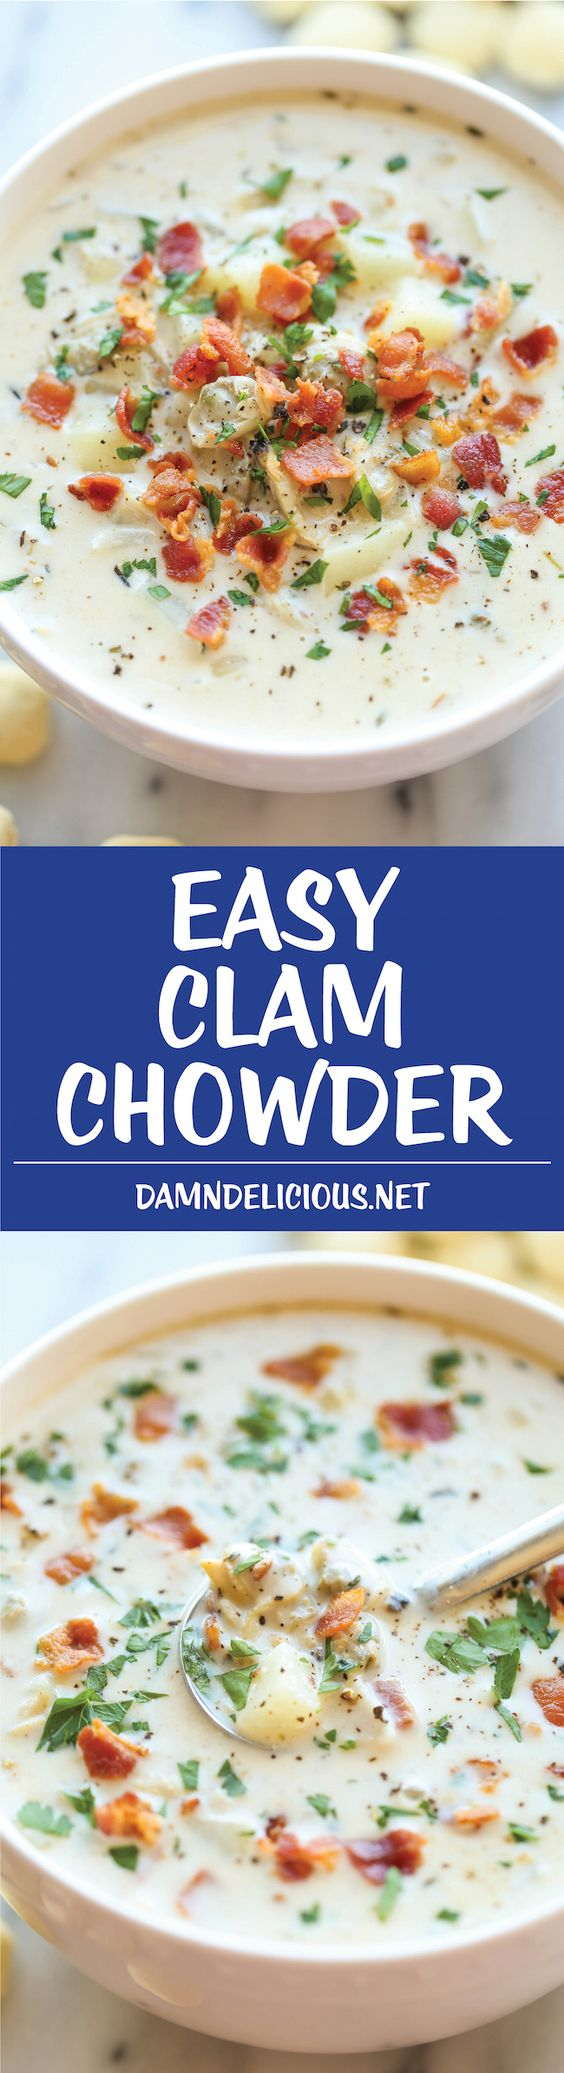 Easy Clam Chowder - Clam chowder is easier to make than you think - and the homemade version is unbelievably creamy, flavorful and chockfull of clams!